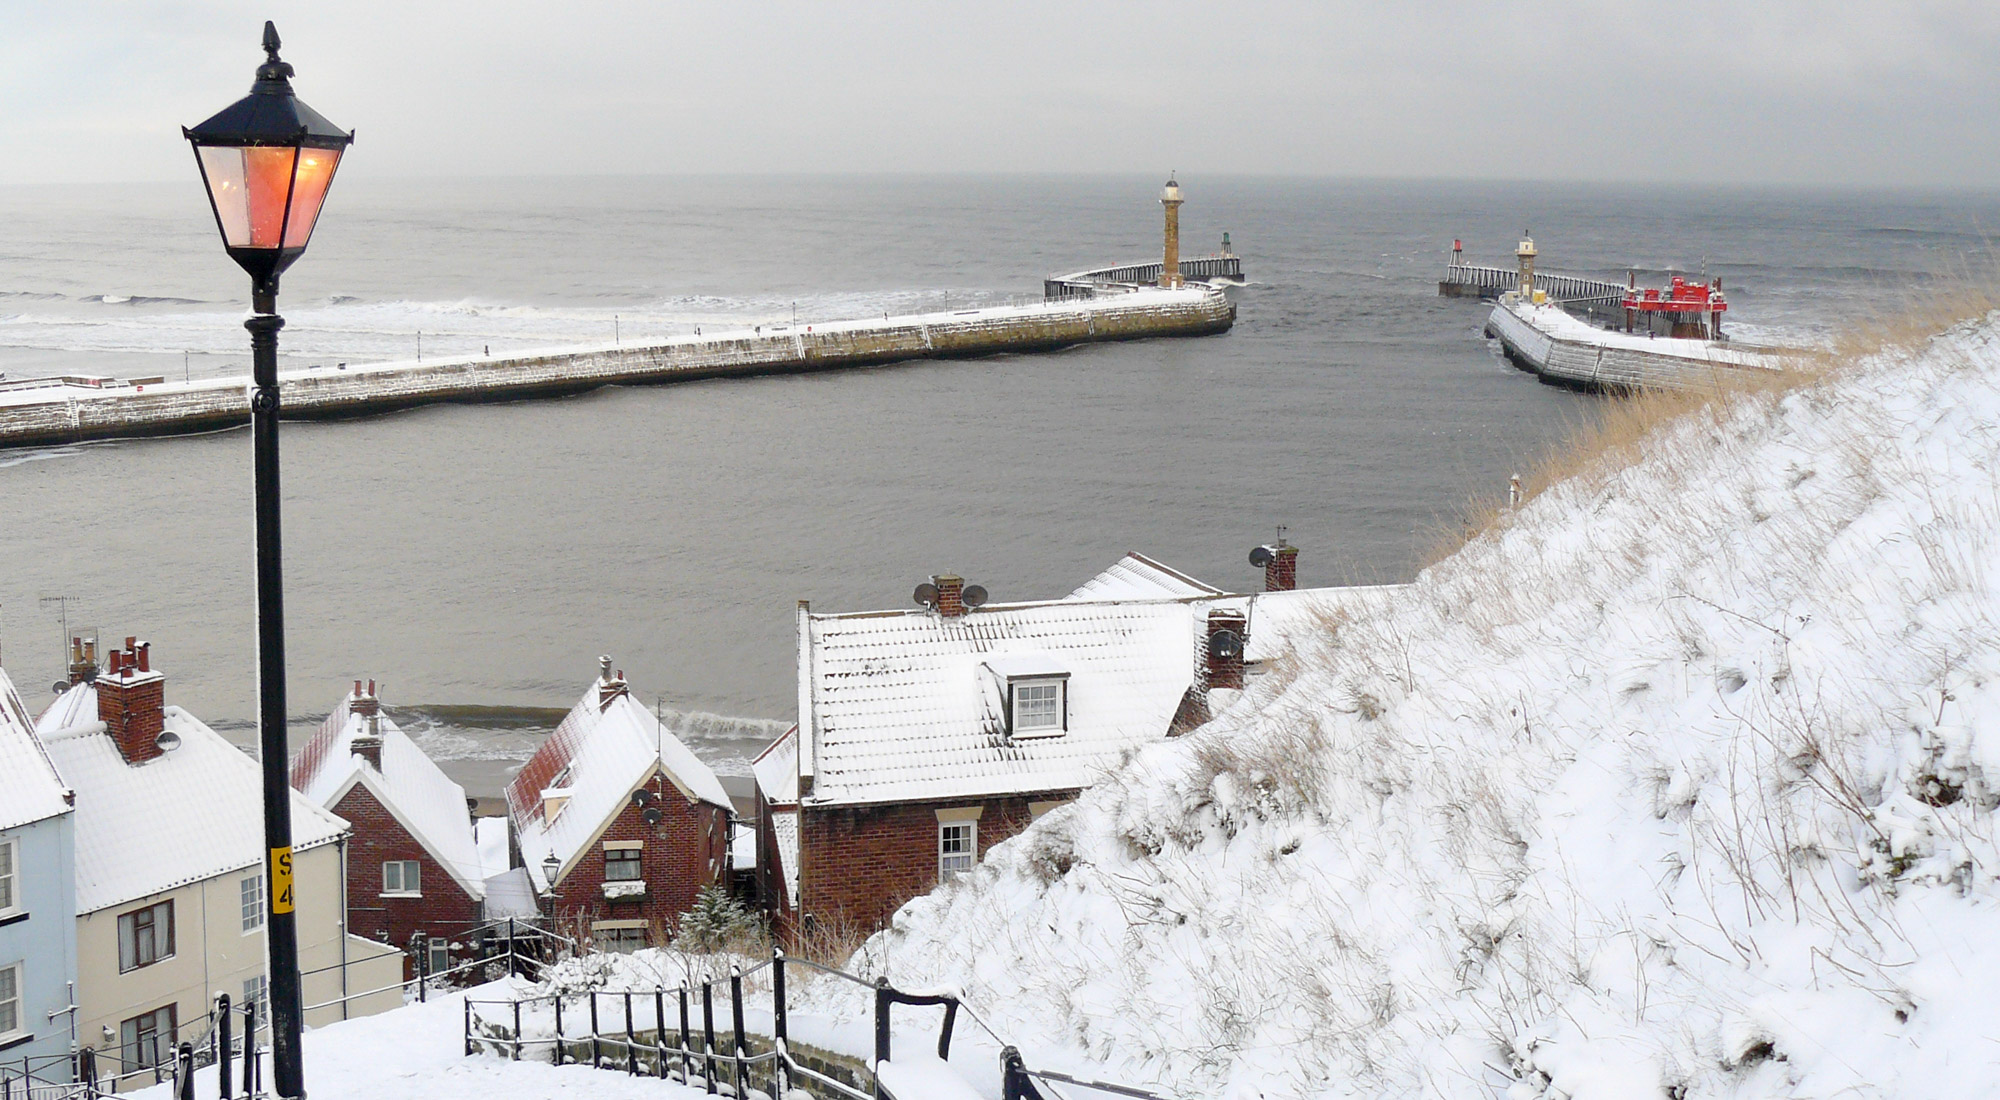 A Christmas Card Of Whitby Piers In The Snow Taken From The 199 Steps